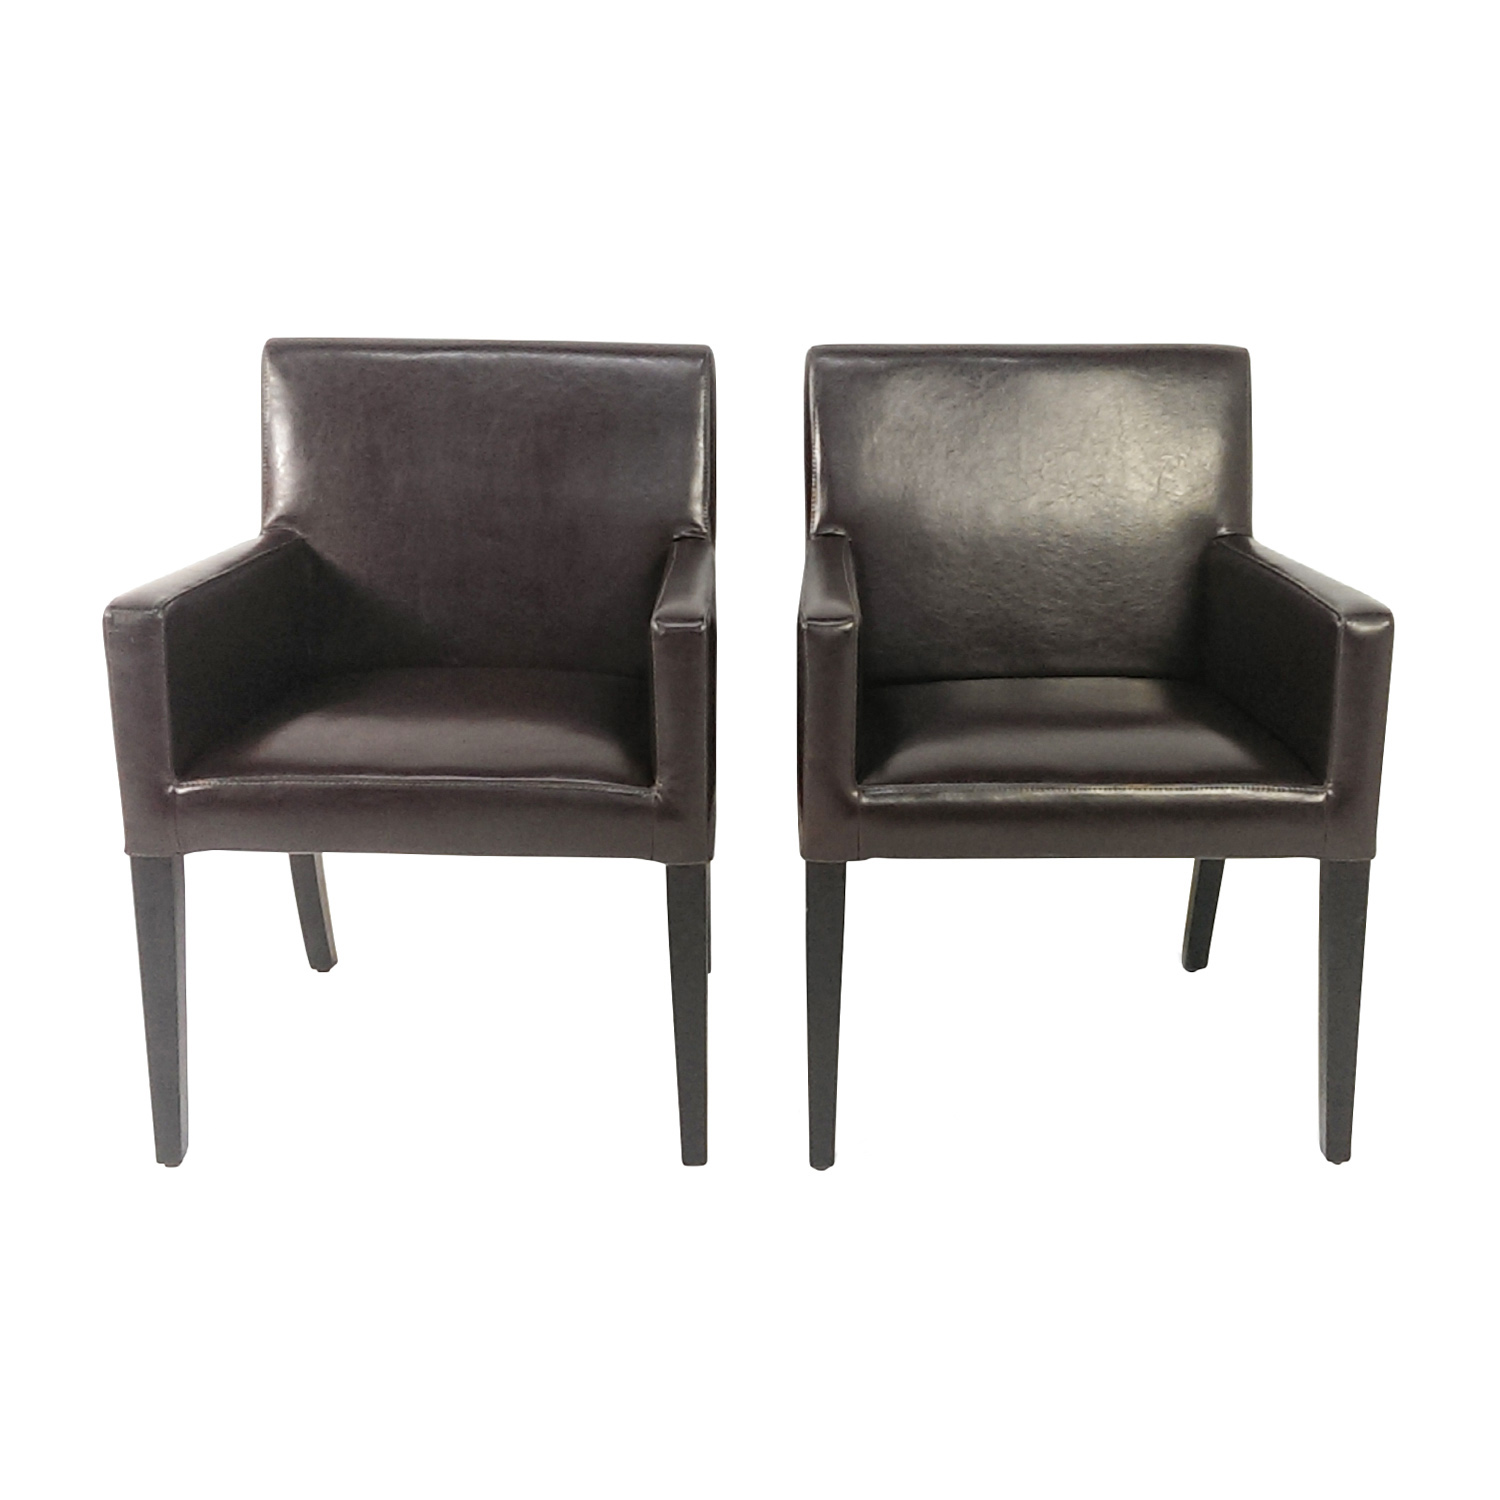 Pair of Leather Office Chairs second hand